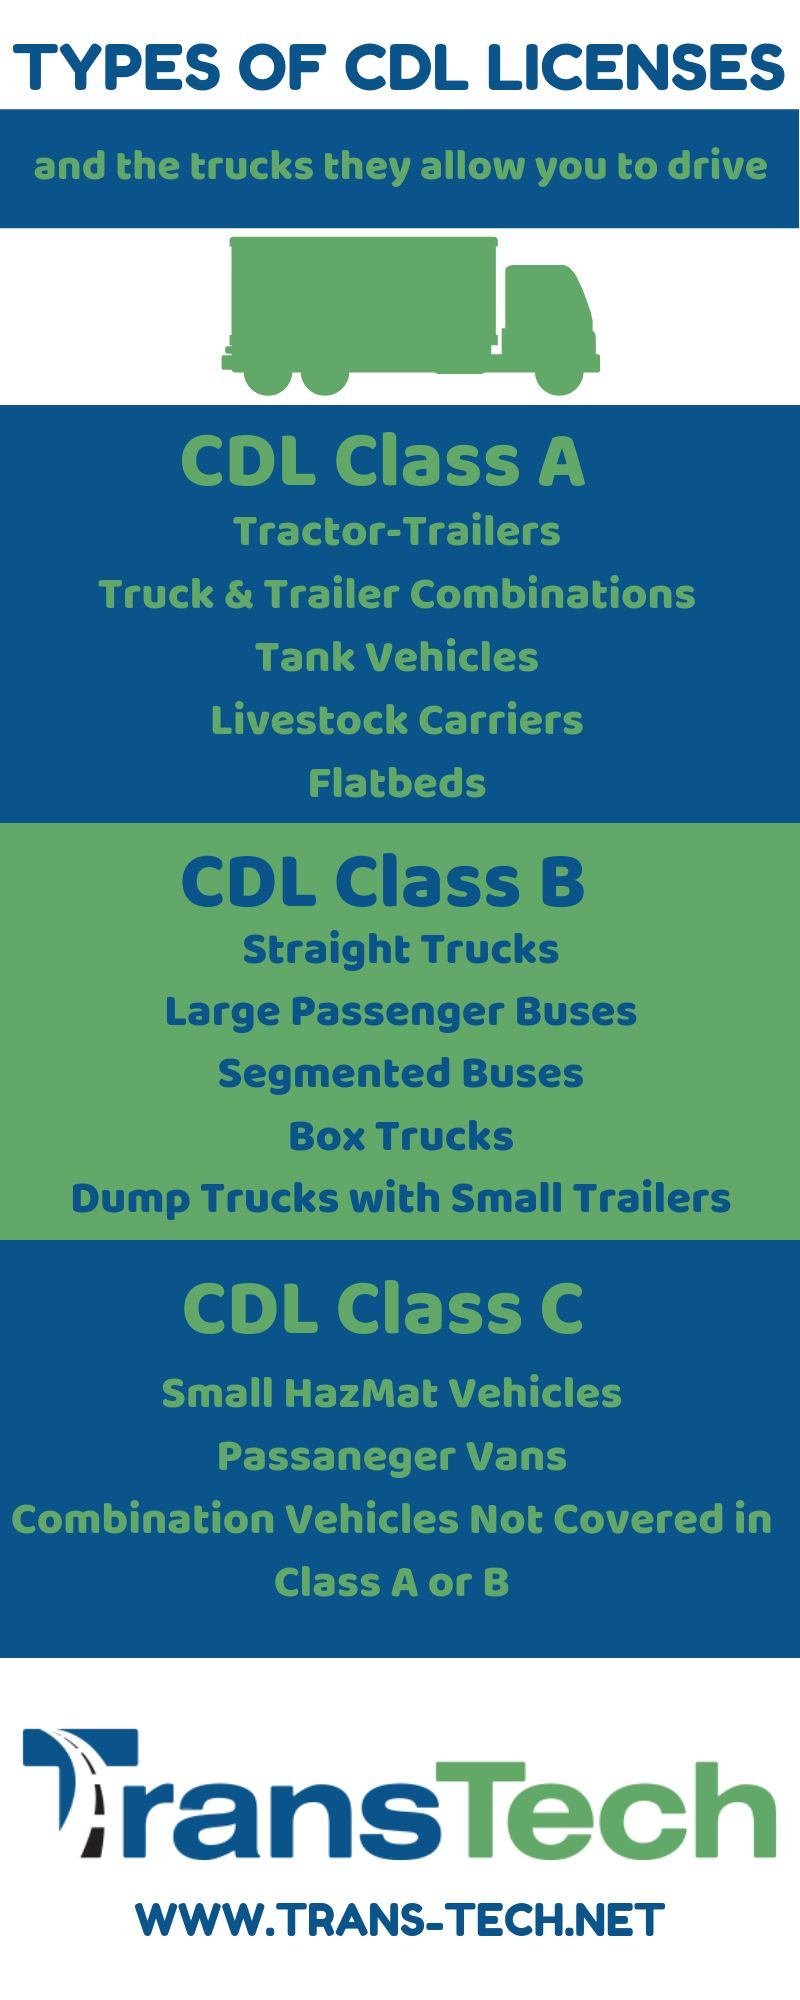 A Commercial Driver's License (CDL) is required to drive